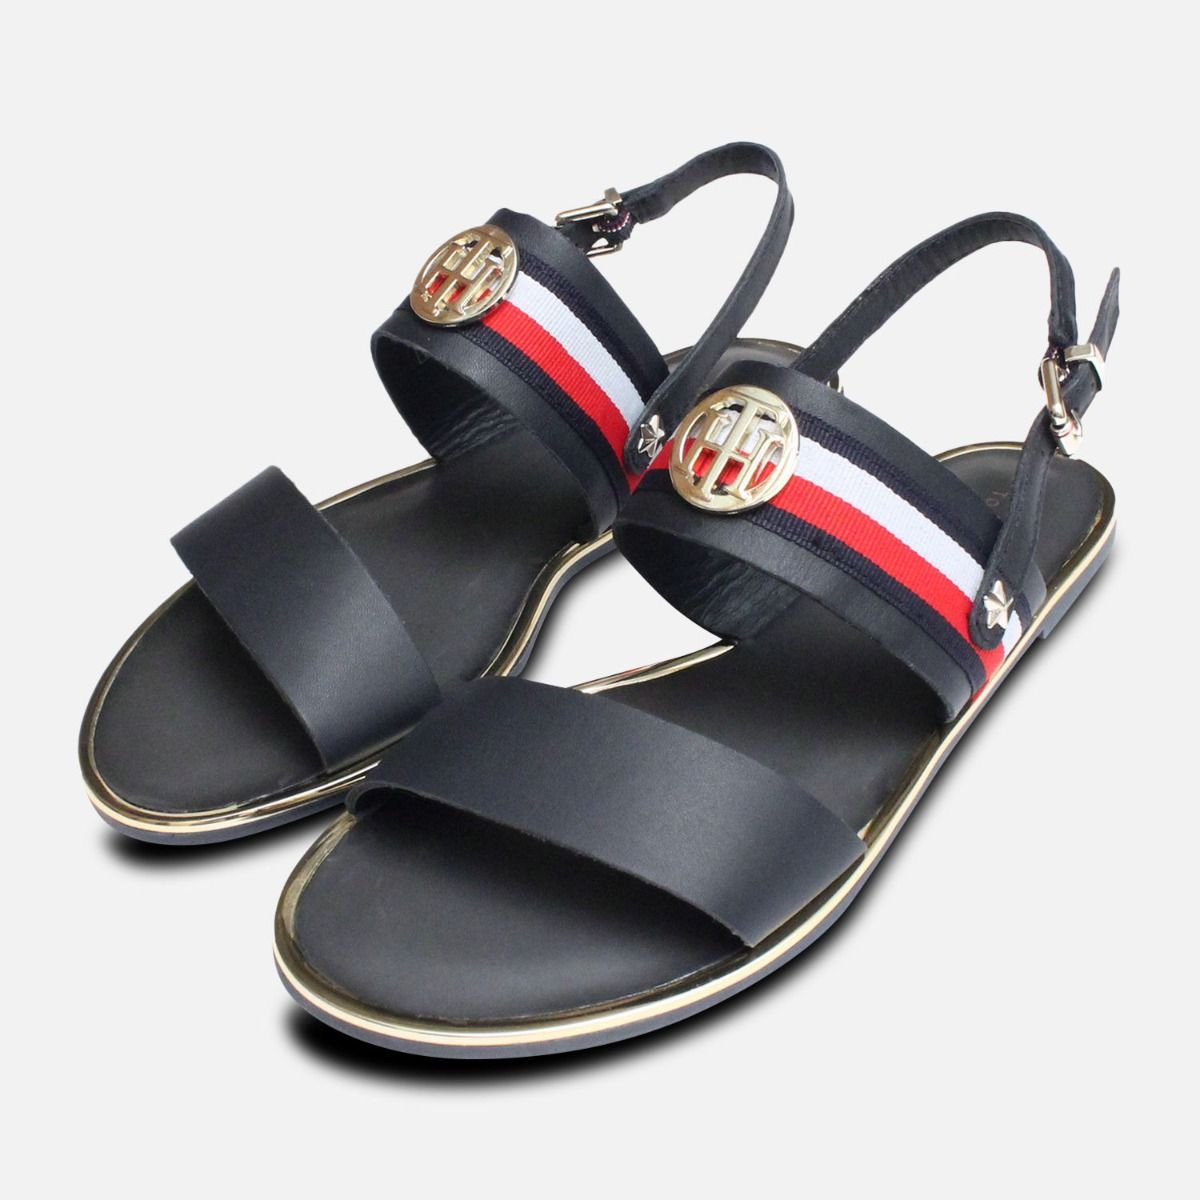 80b23a64049c Tommy Hilfiger Flat Summer Sandals in Navy Blue